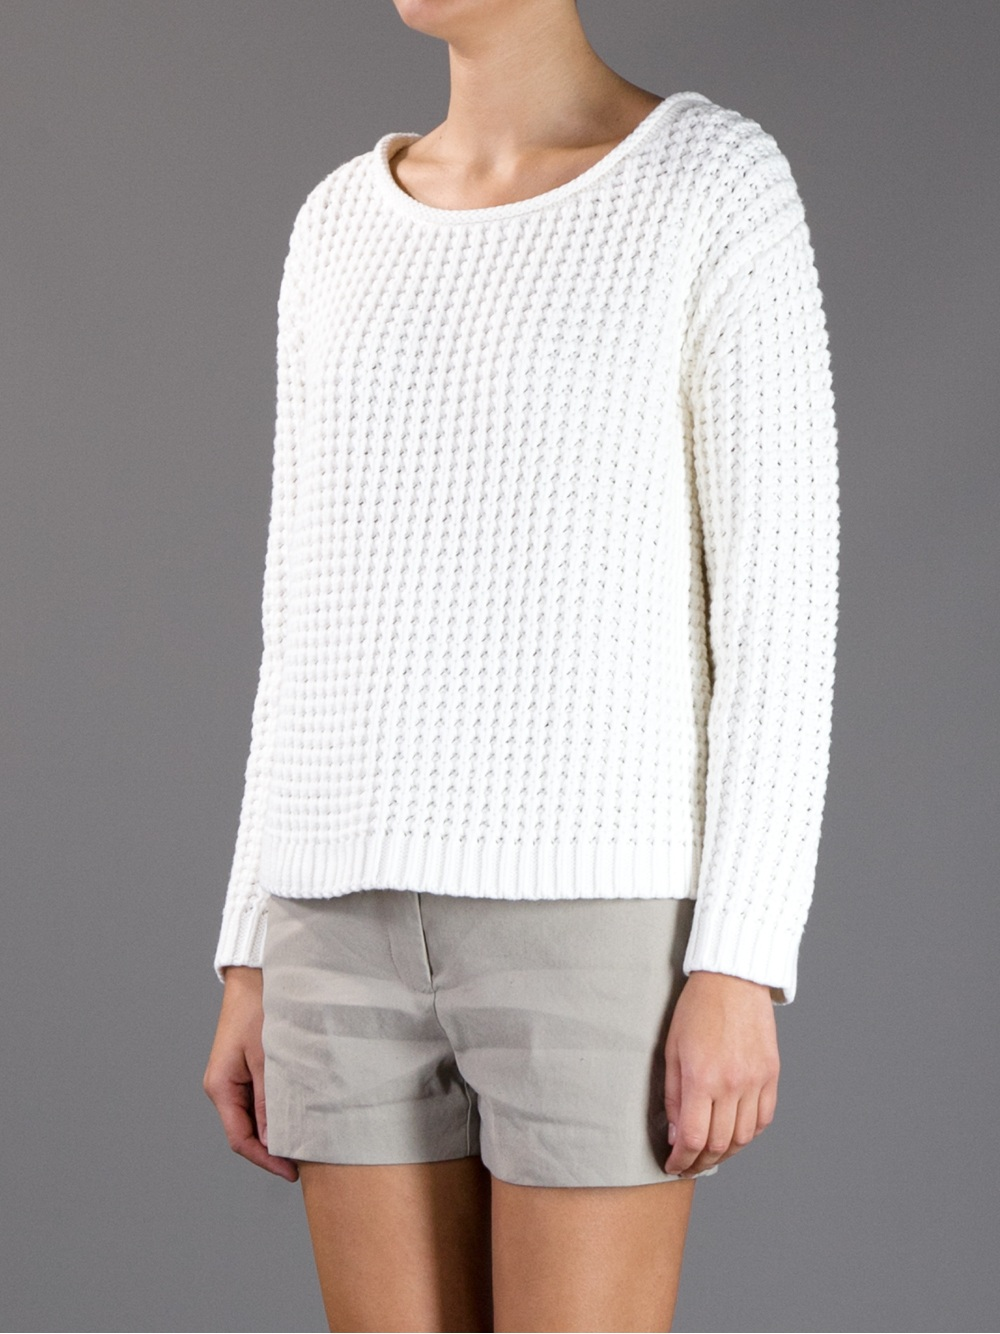 Acne Sapata Boxy Knit Sweater in White Lyst